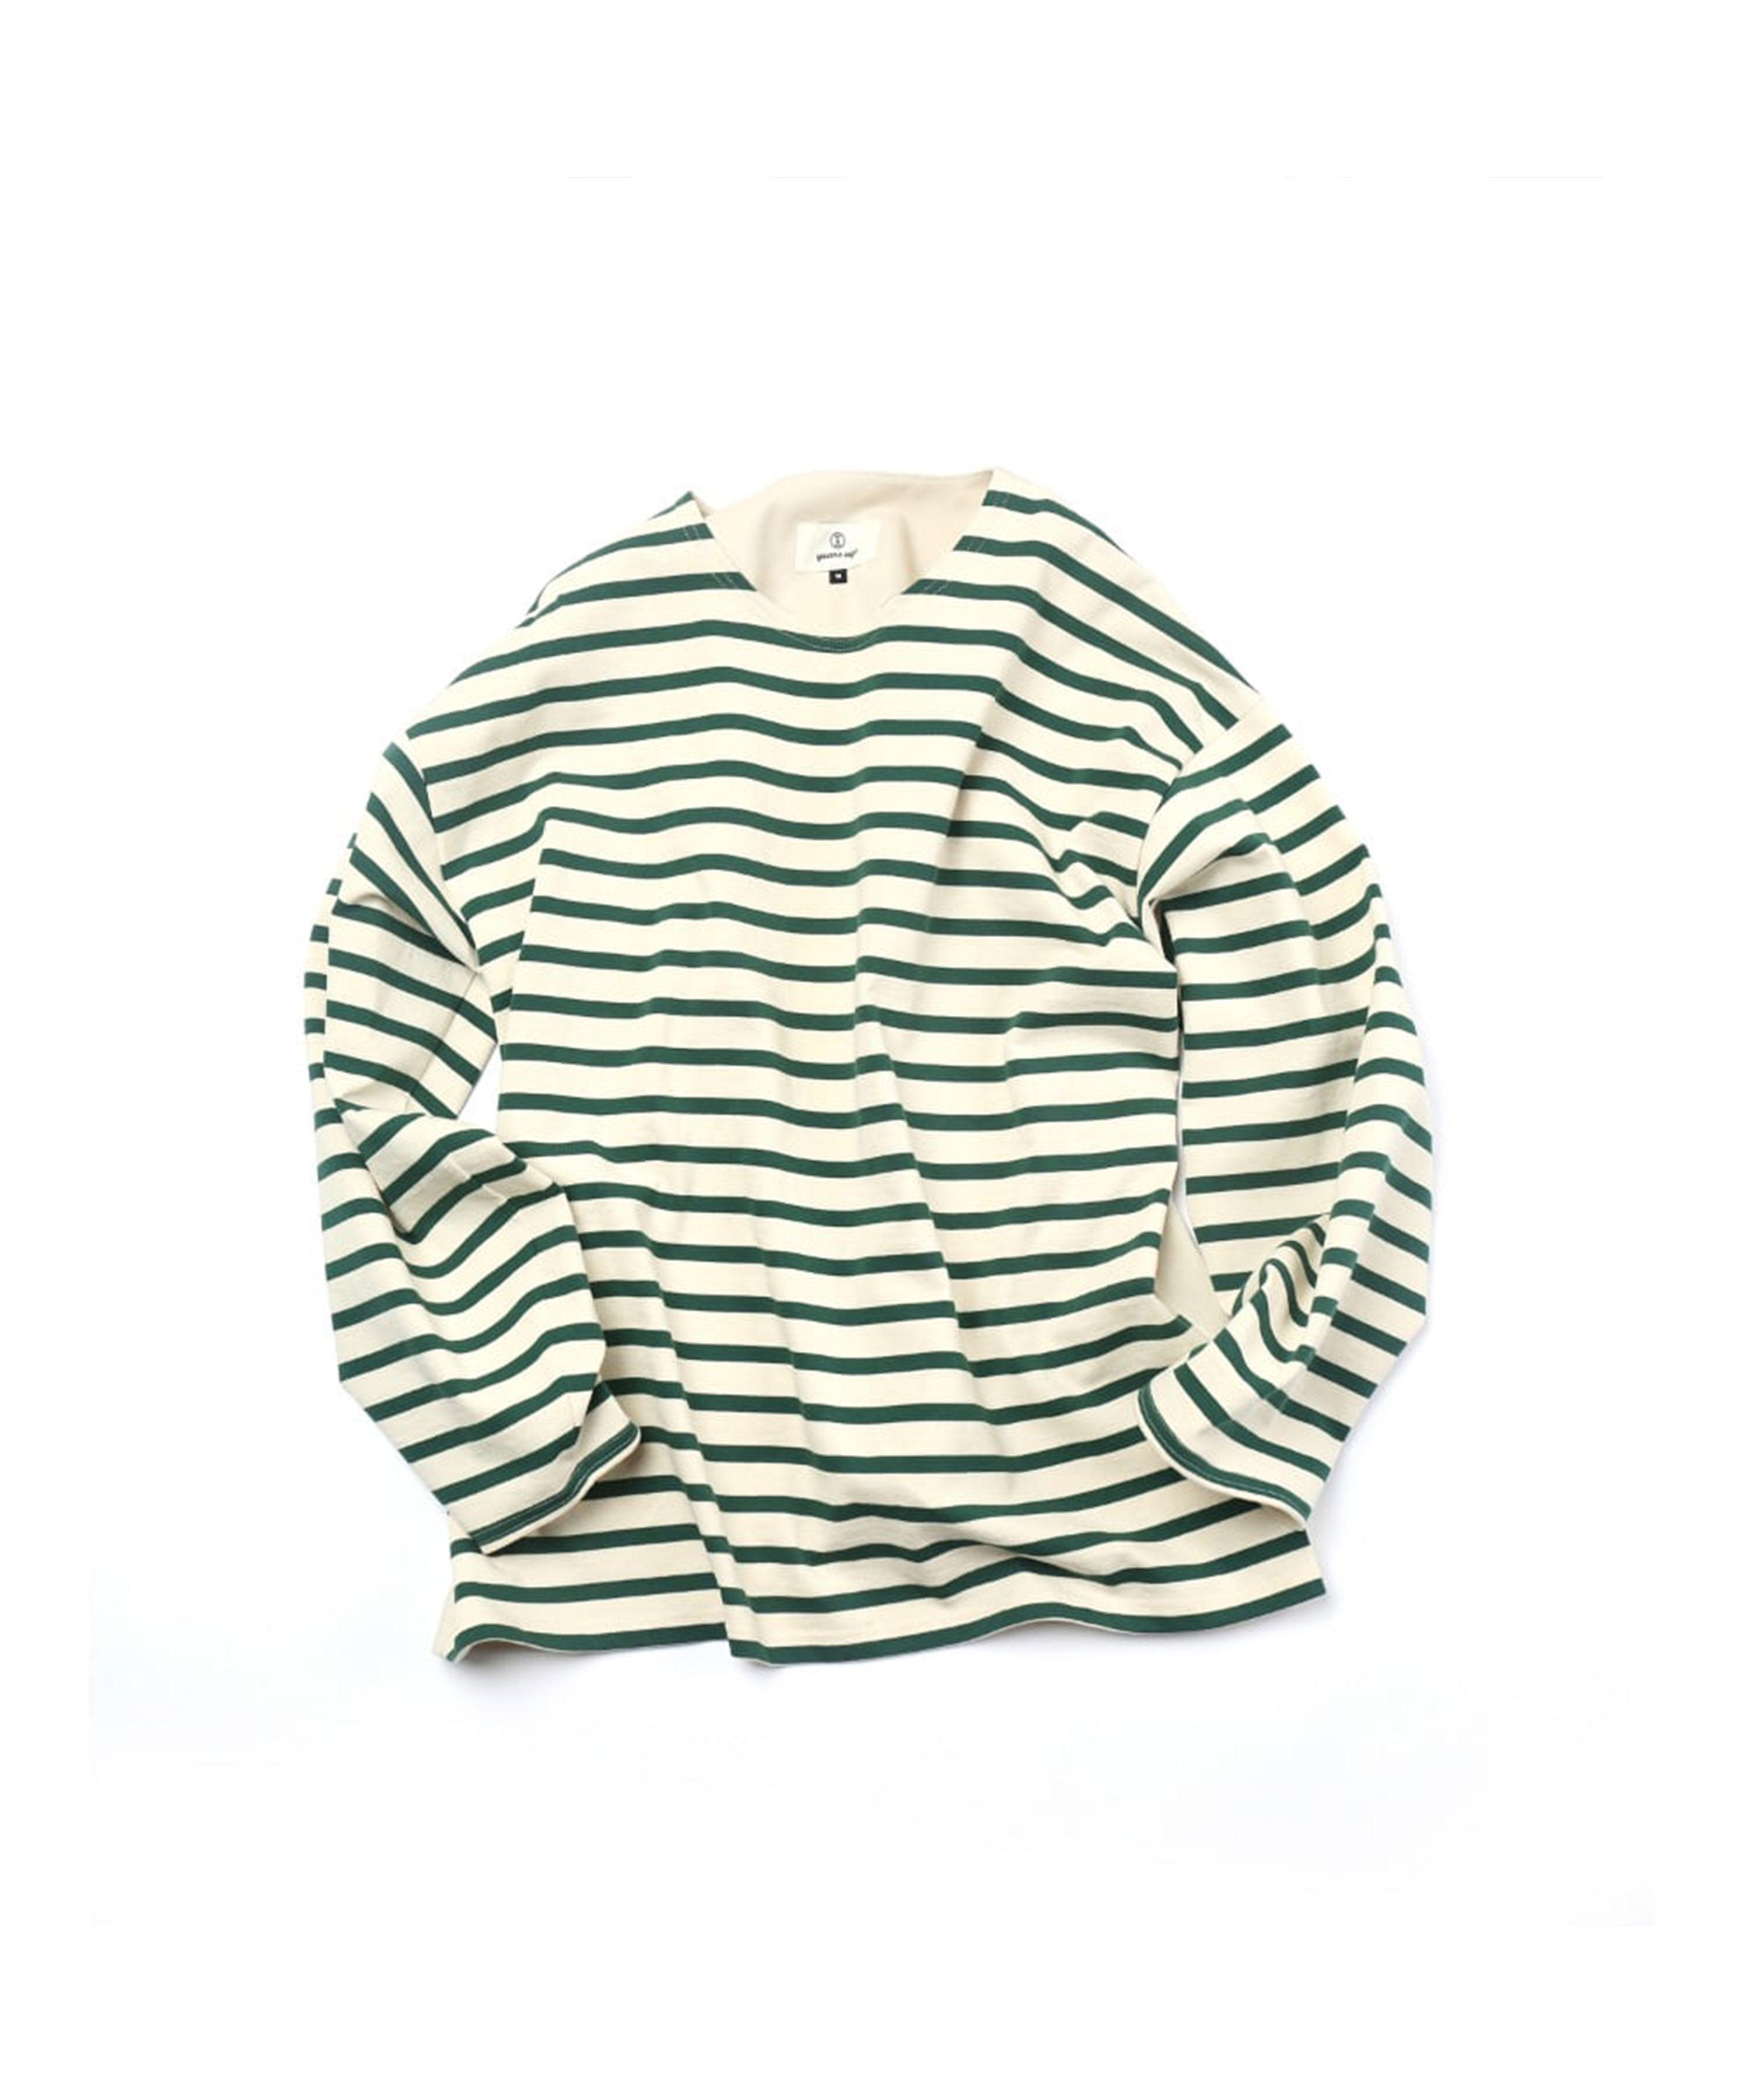 GREEN STRIPE OCTOPUS BASQUE SHIRTS